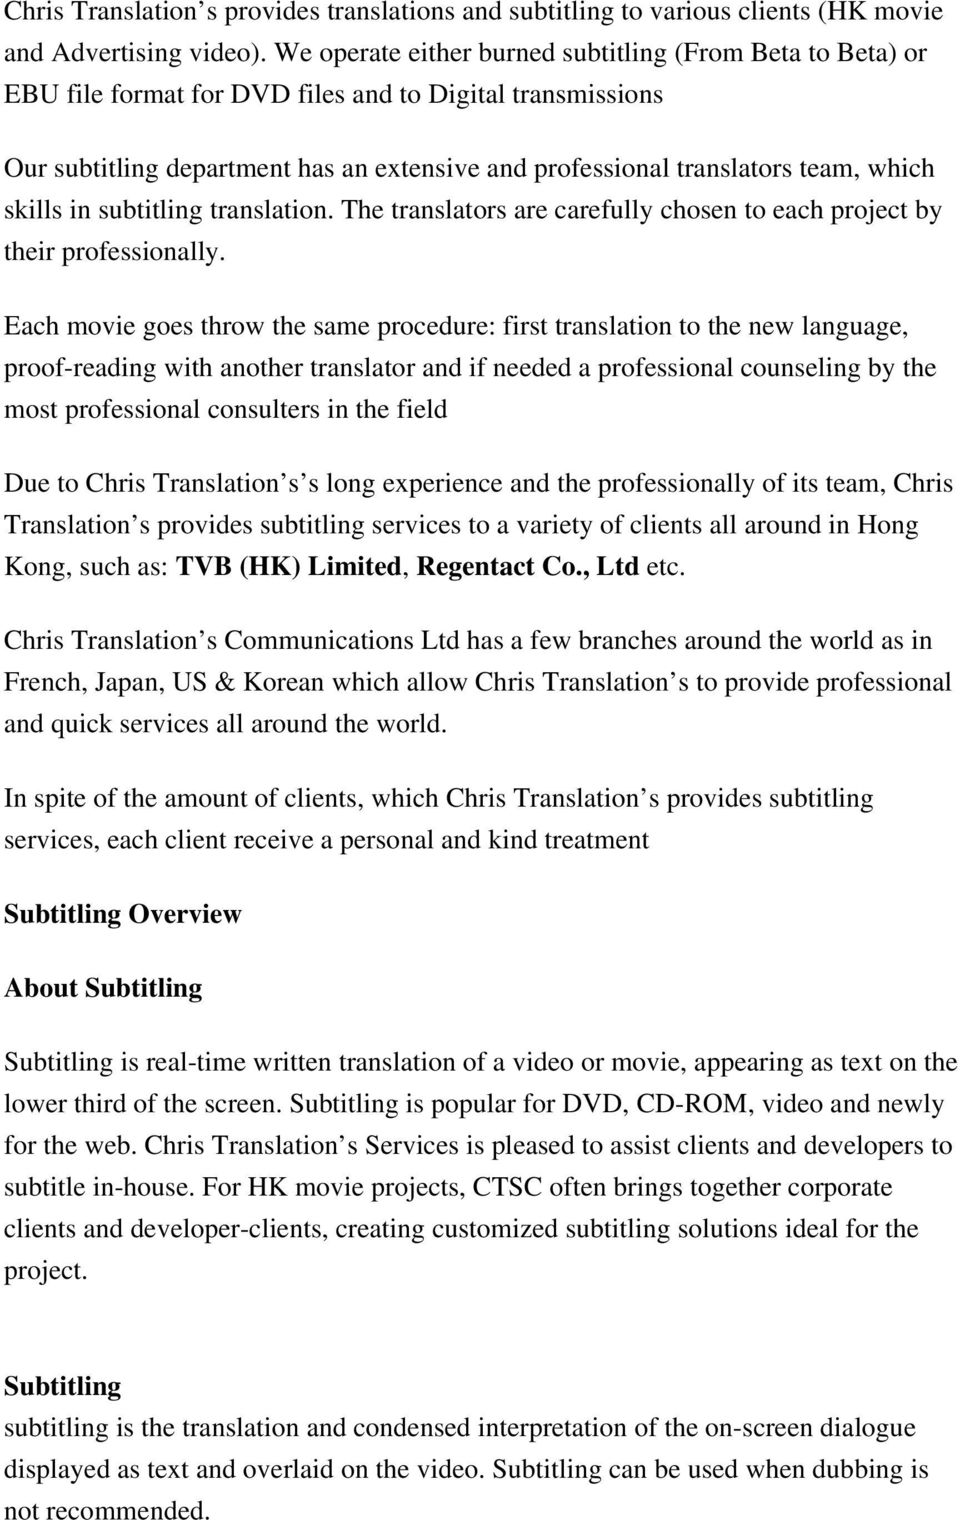 In spite of the amount of clients, which Chris Translation s